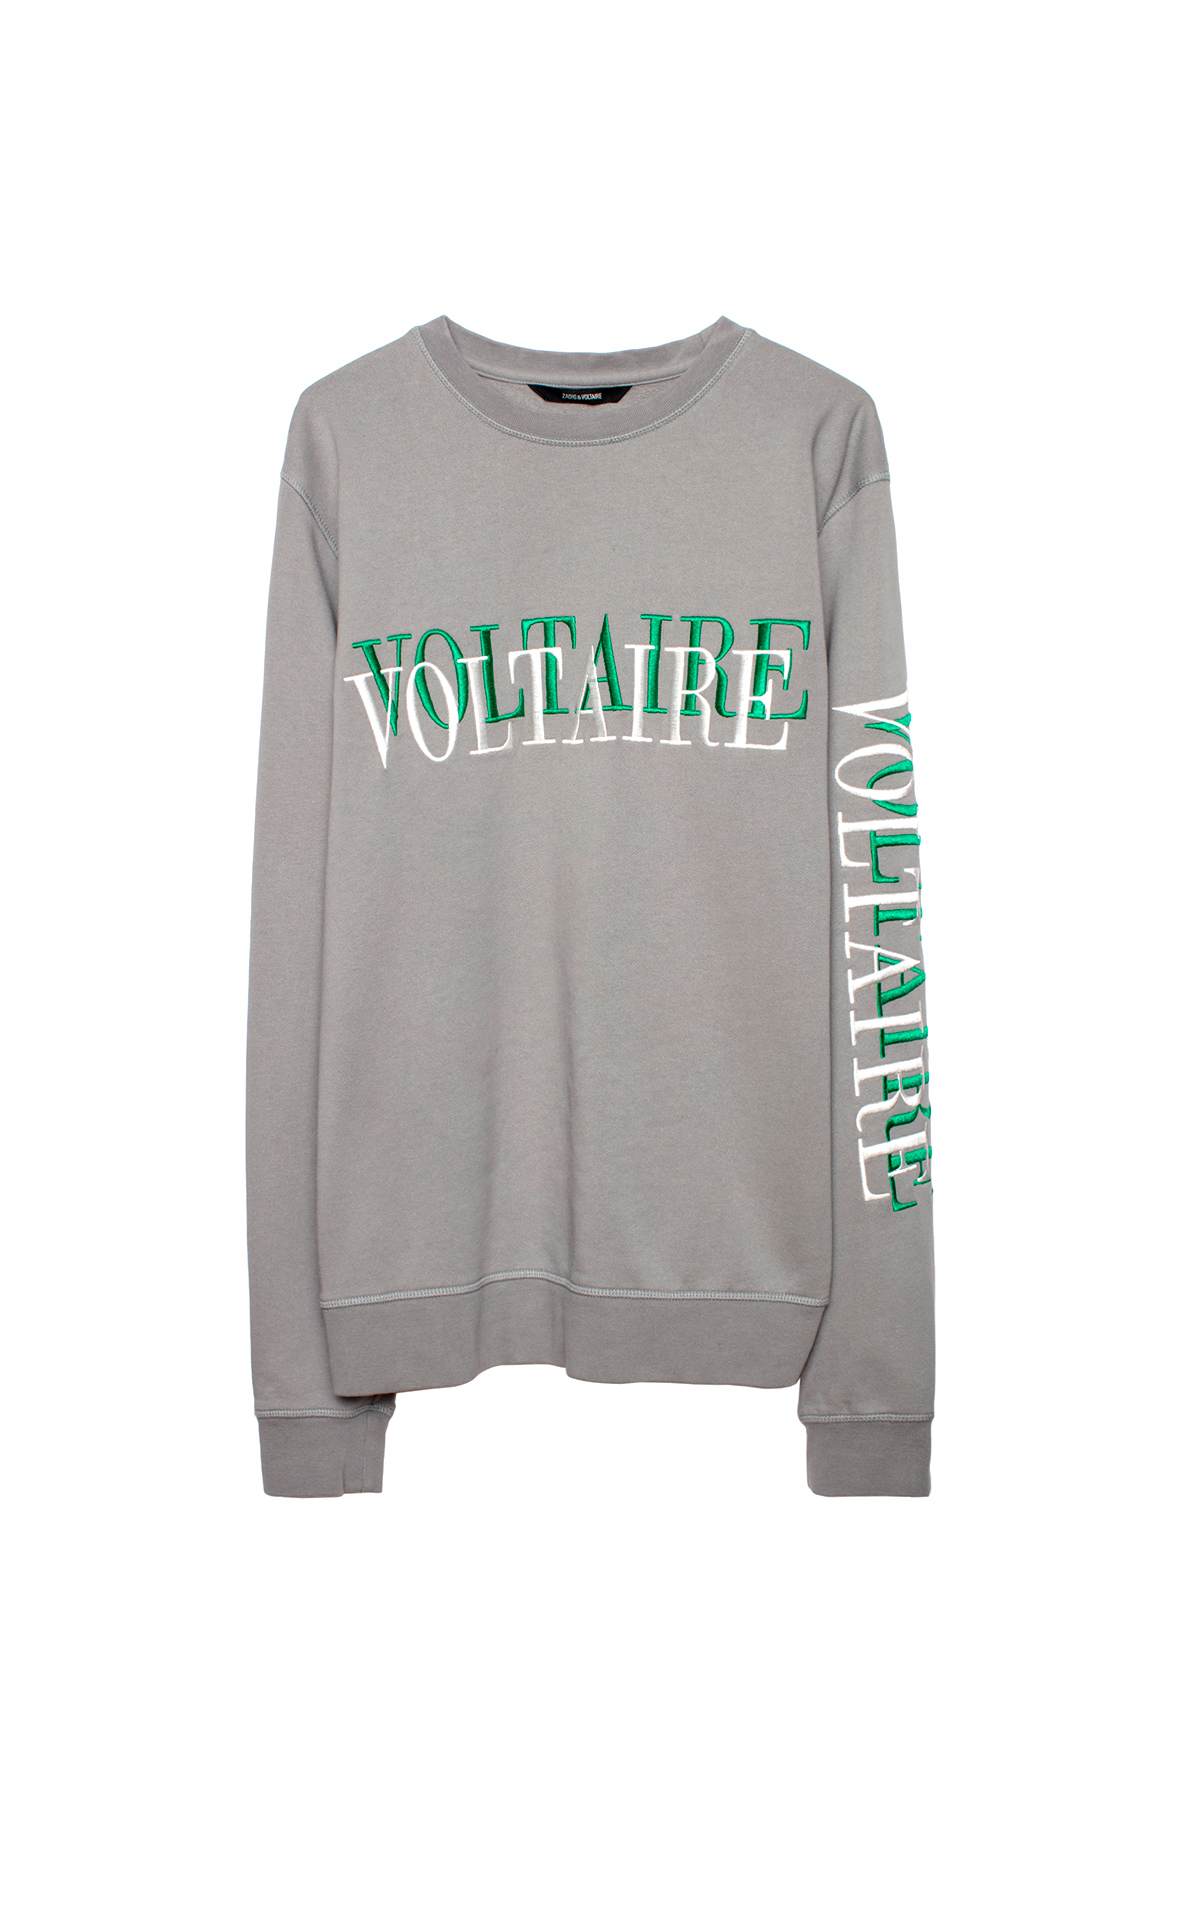 Grey sweatshirt with green and white logo Zadig & Voltaire